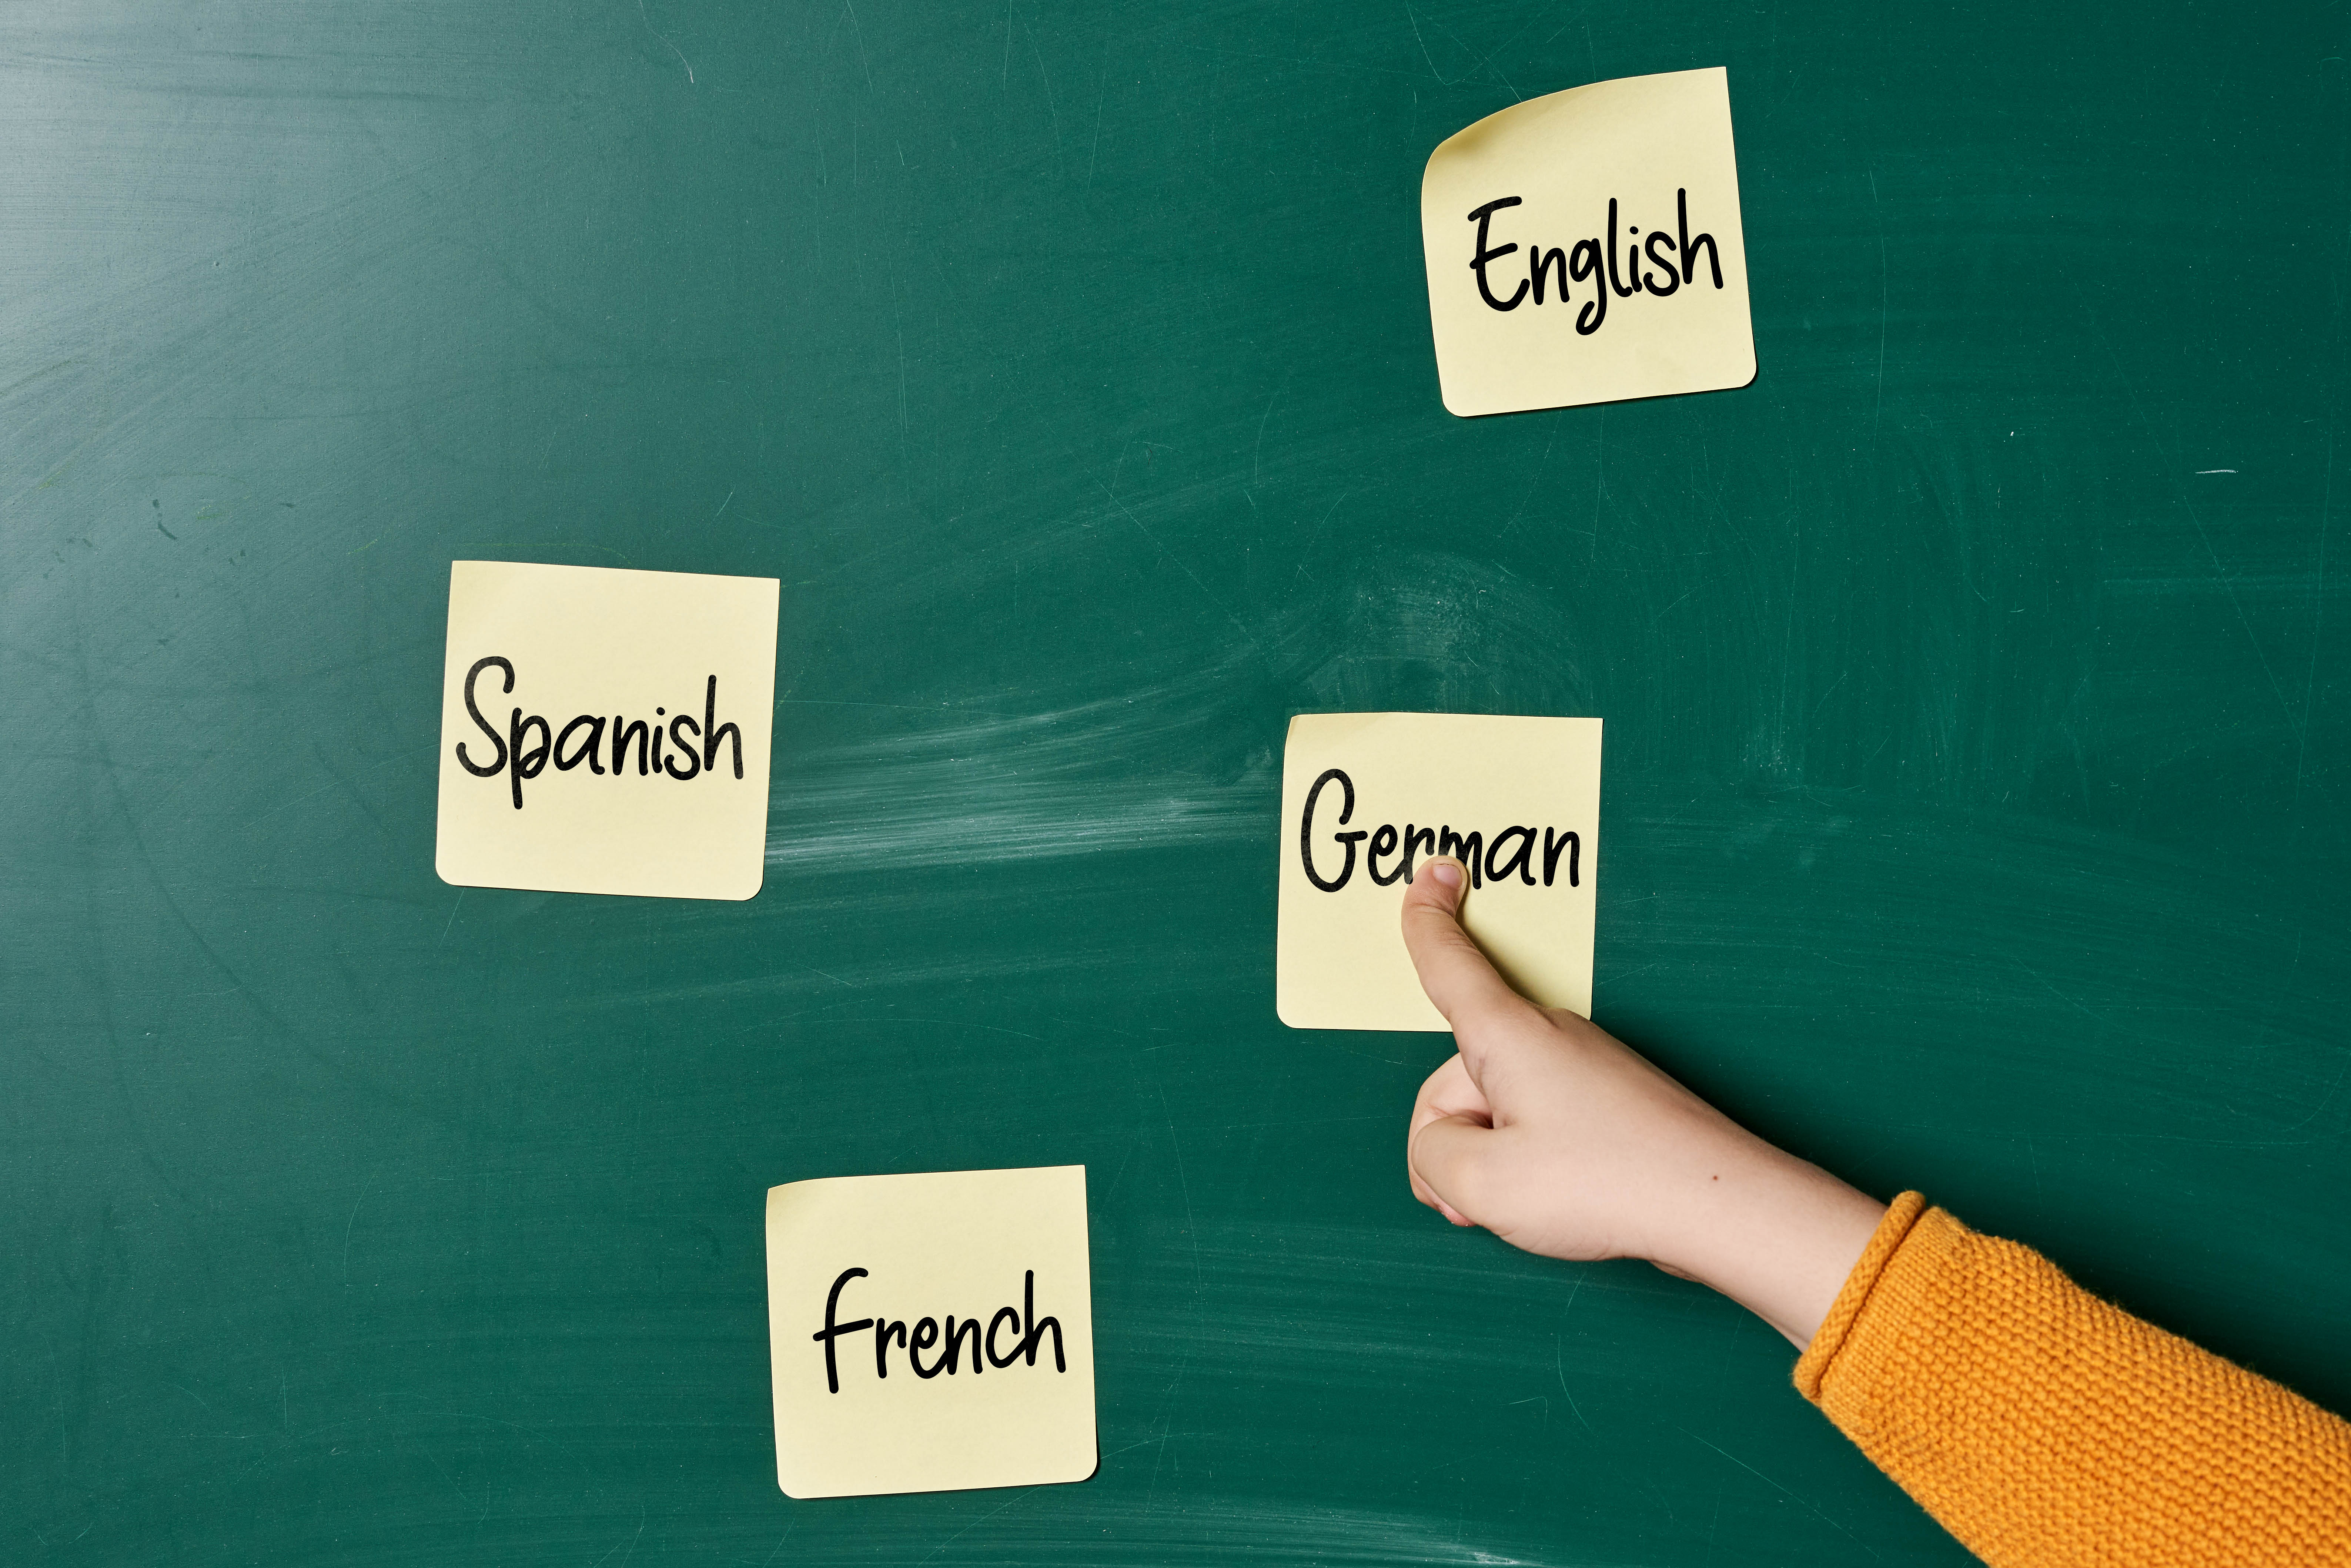 Bilingualism can open up new job opportunities.